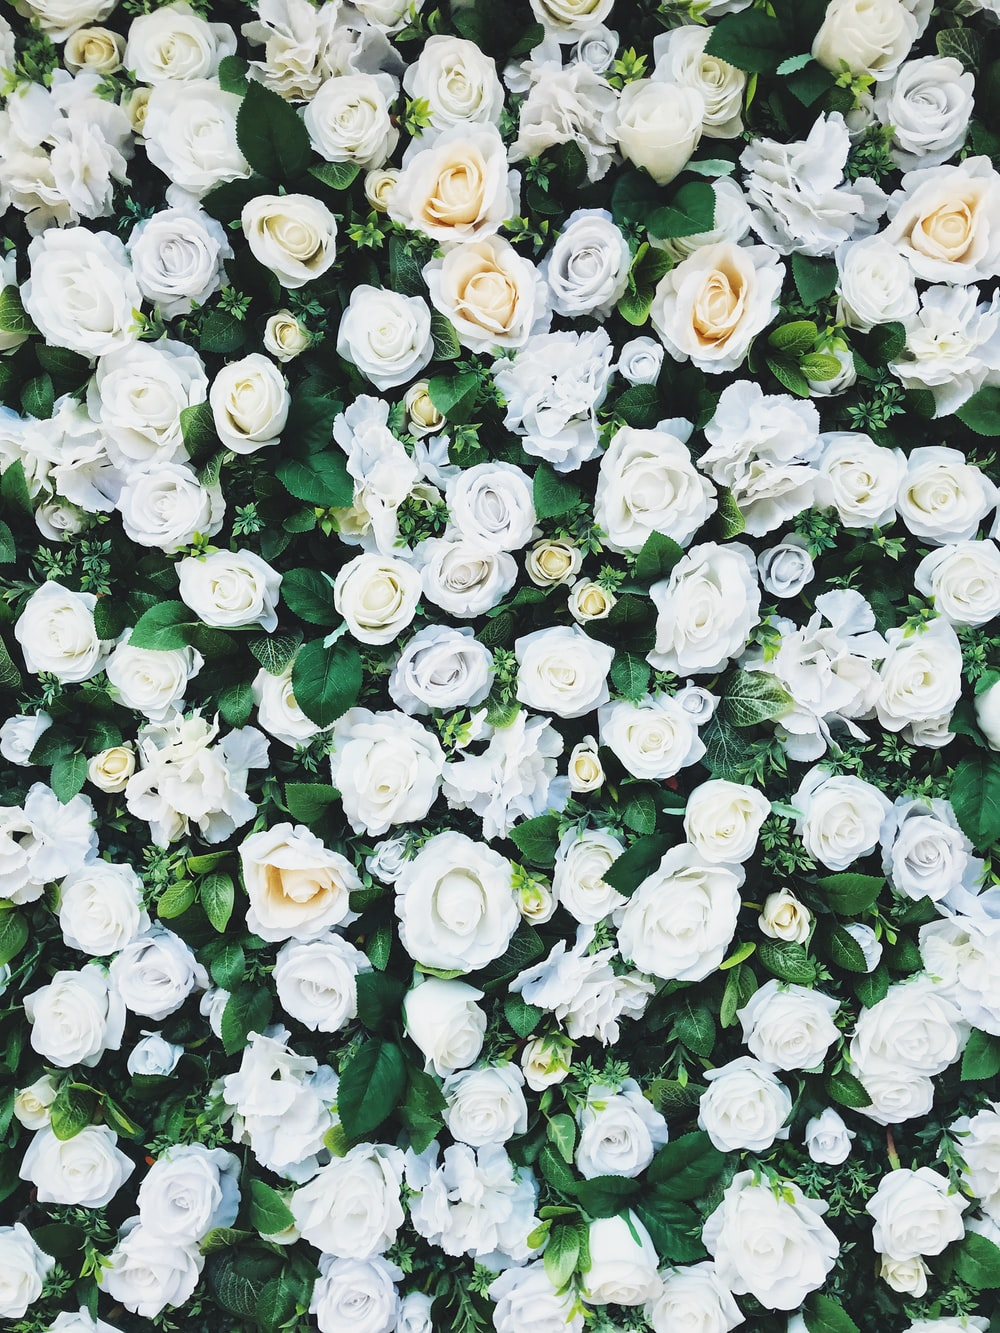 White flowers pictures download free images on unsplash white rose field mightylinksfo